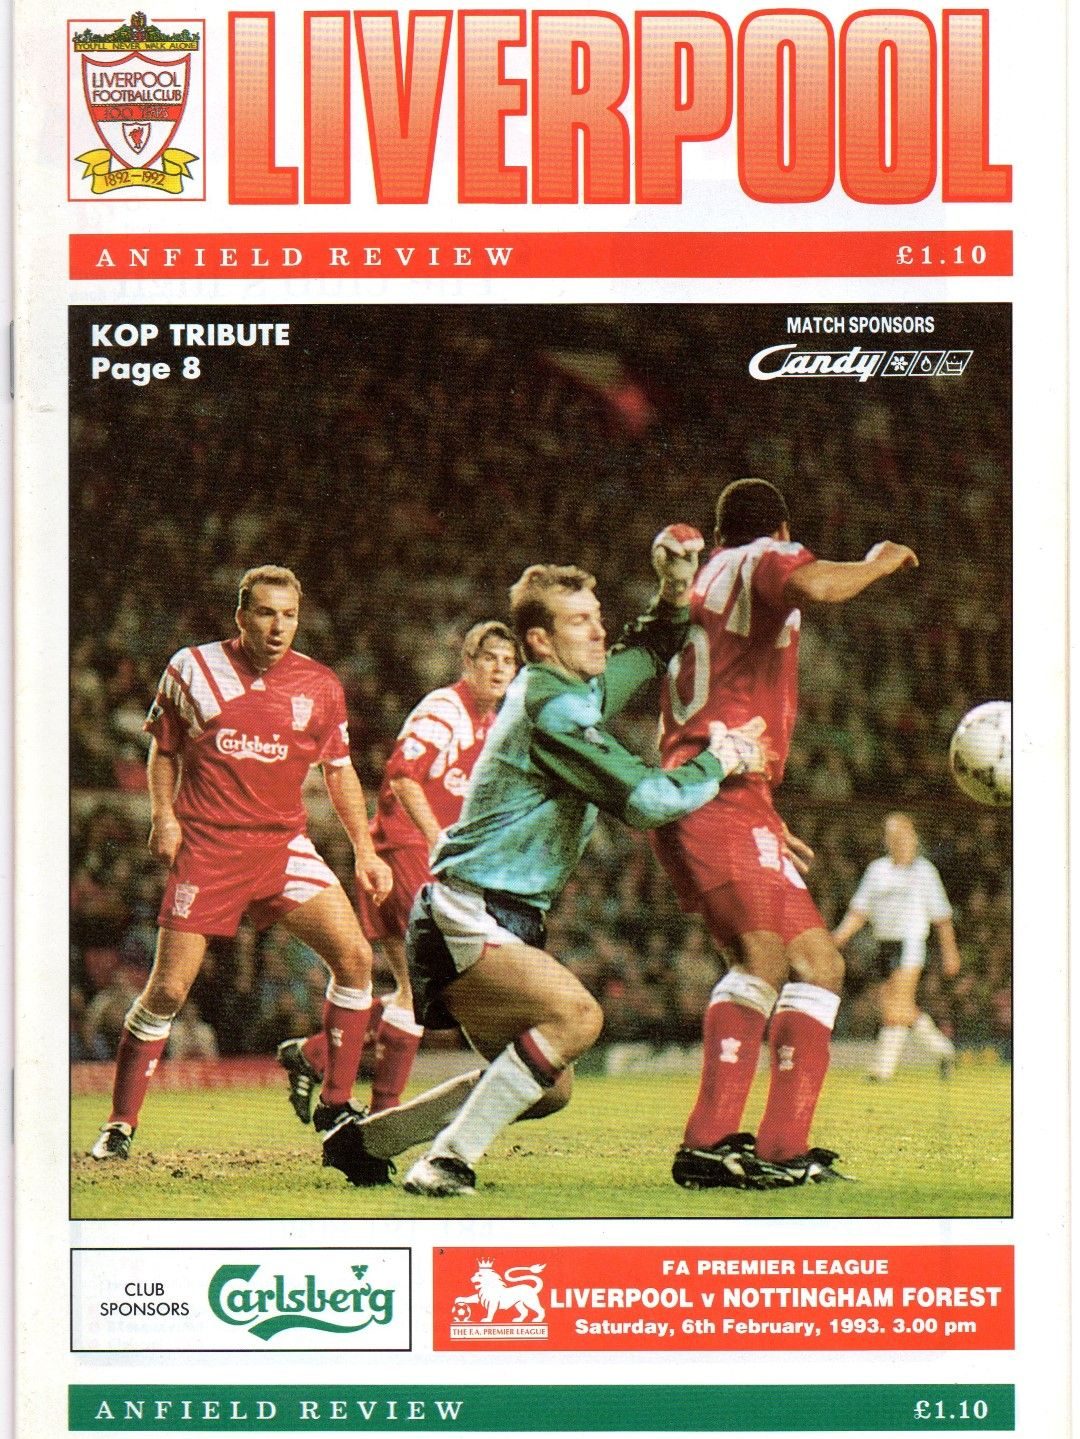 Liverpool 0 Nottm Forest 0 in Feb 1993 at Anfield. The